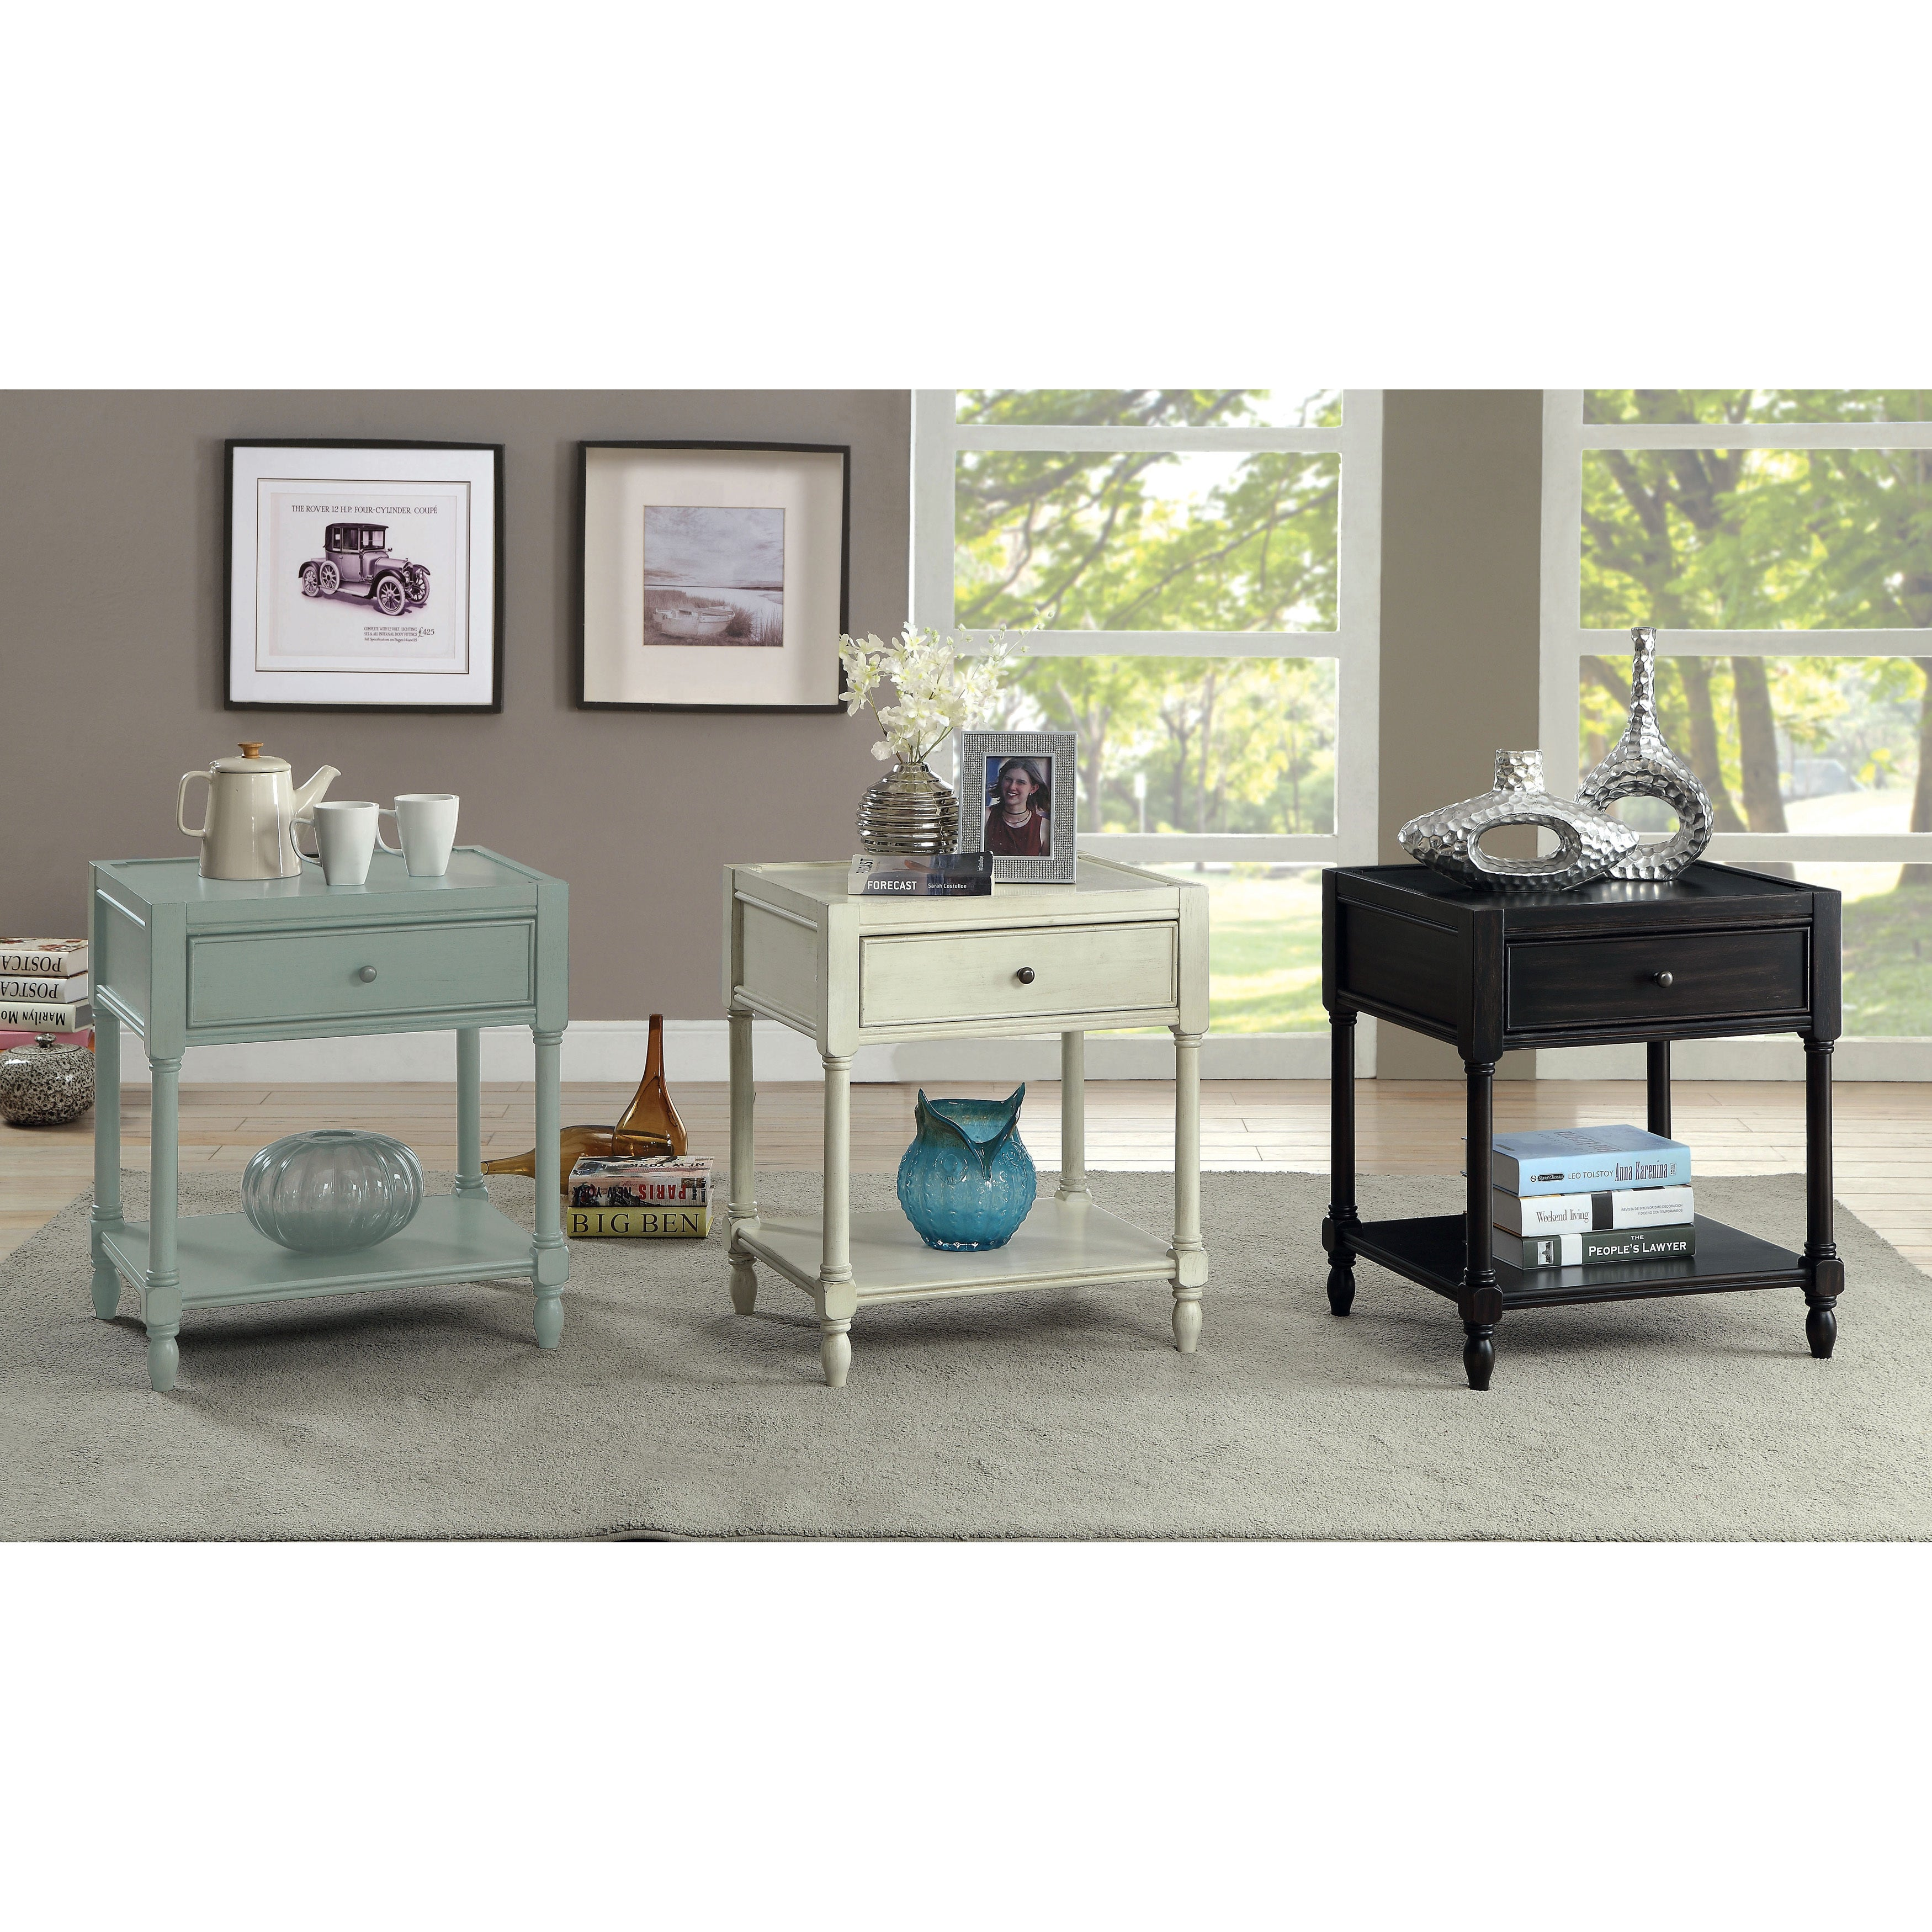 Shop The Gray Barn Dingo Point Vintage Style End Table On Sale